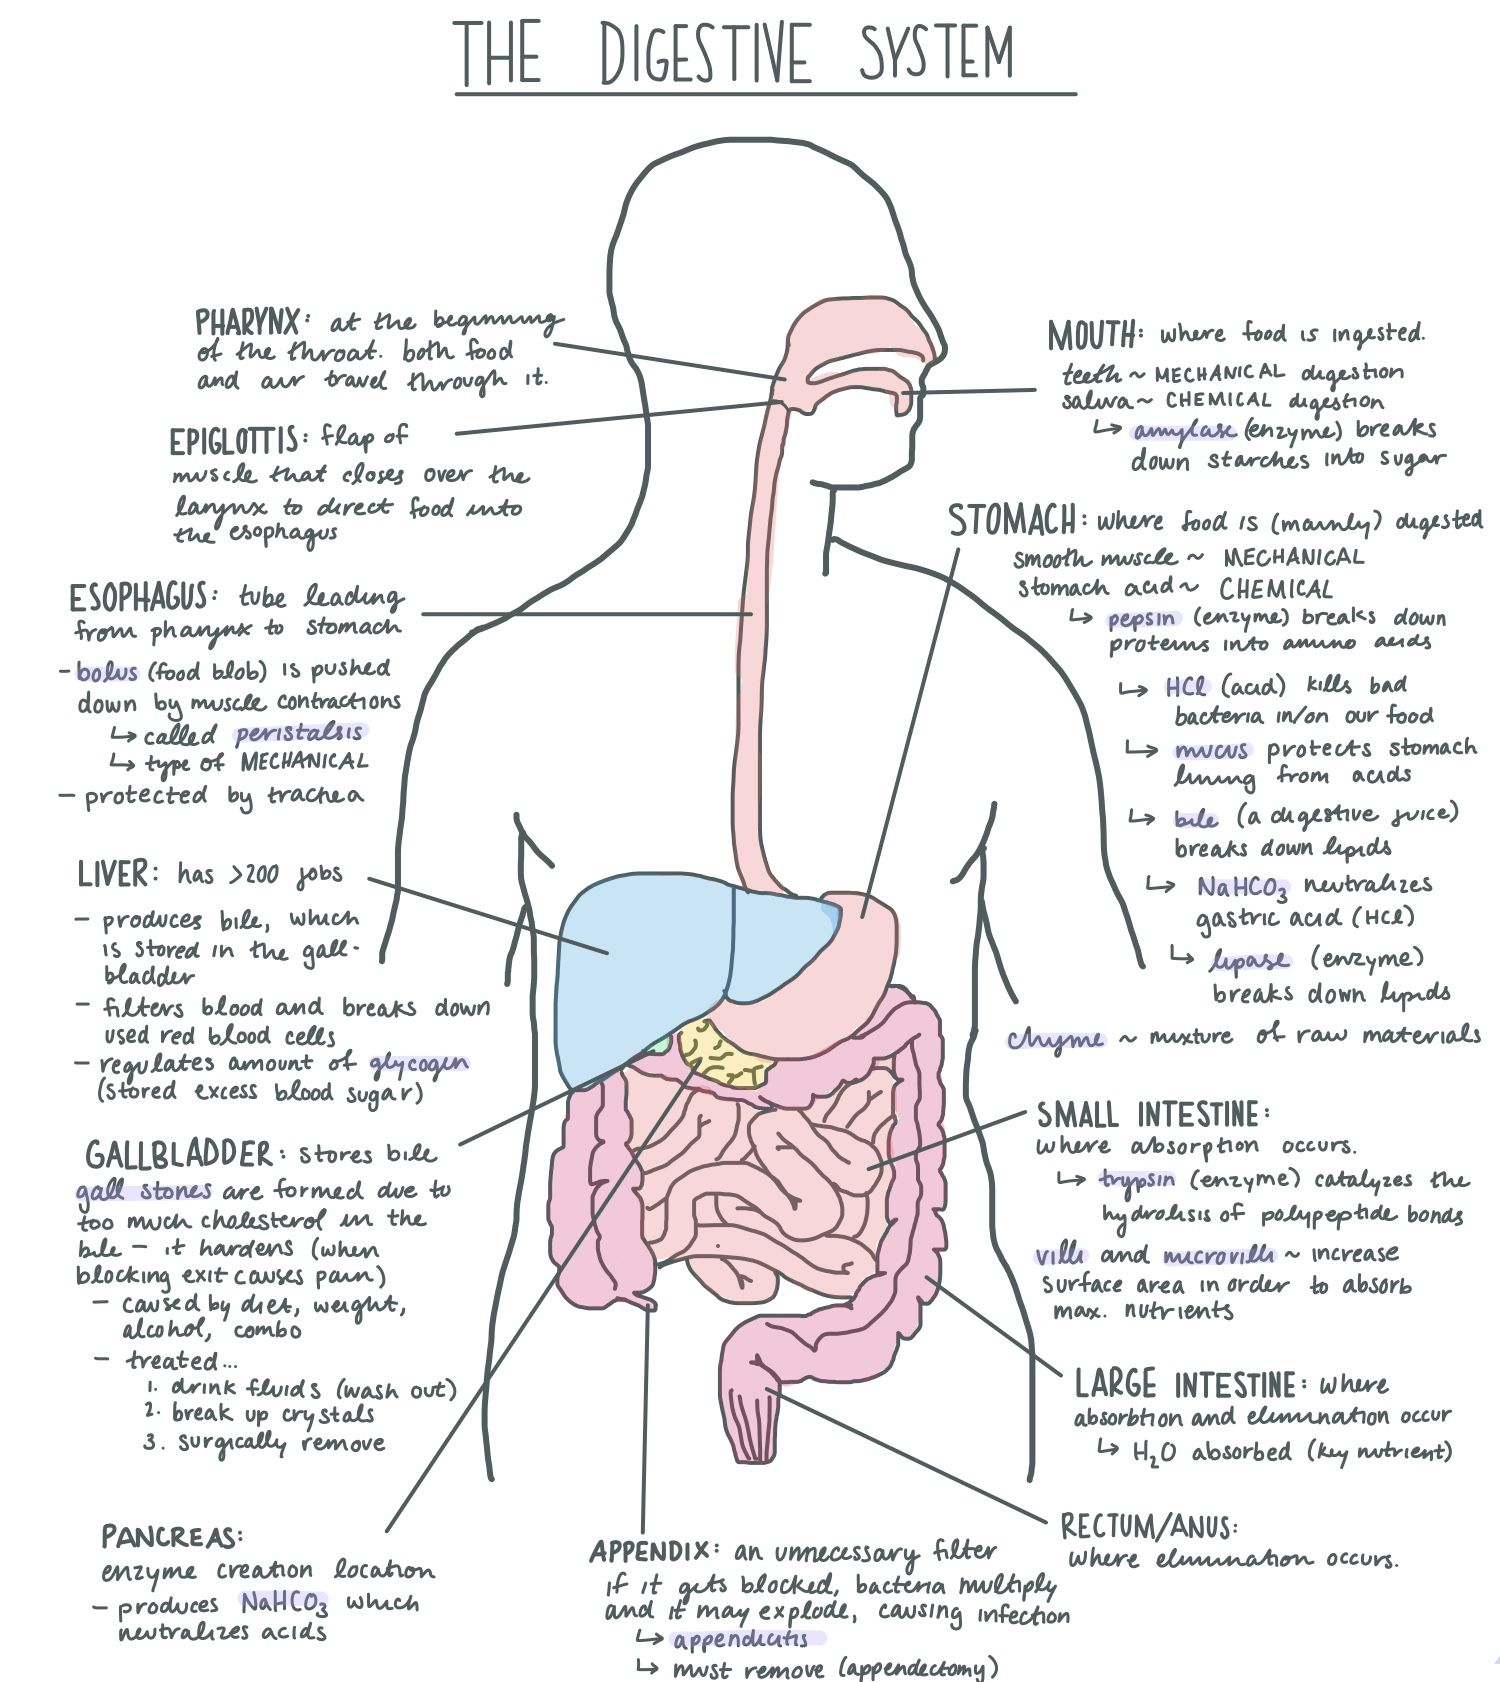 Digestive System Facts Cool Kid Facts Digestive System Diagram Digestive System Anatomy Medical School Studying